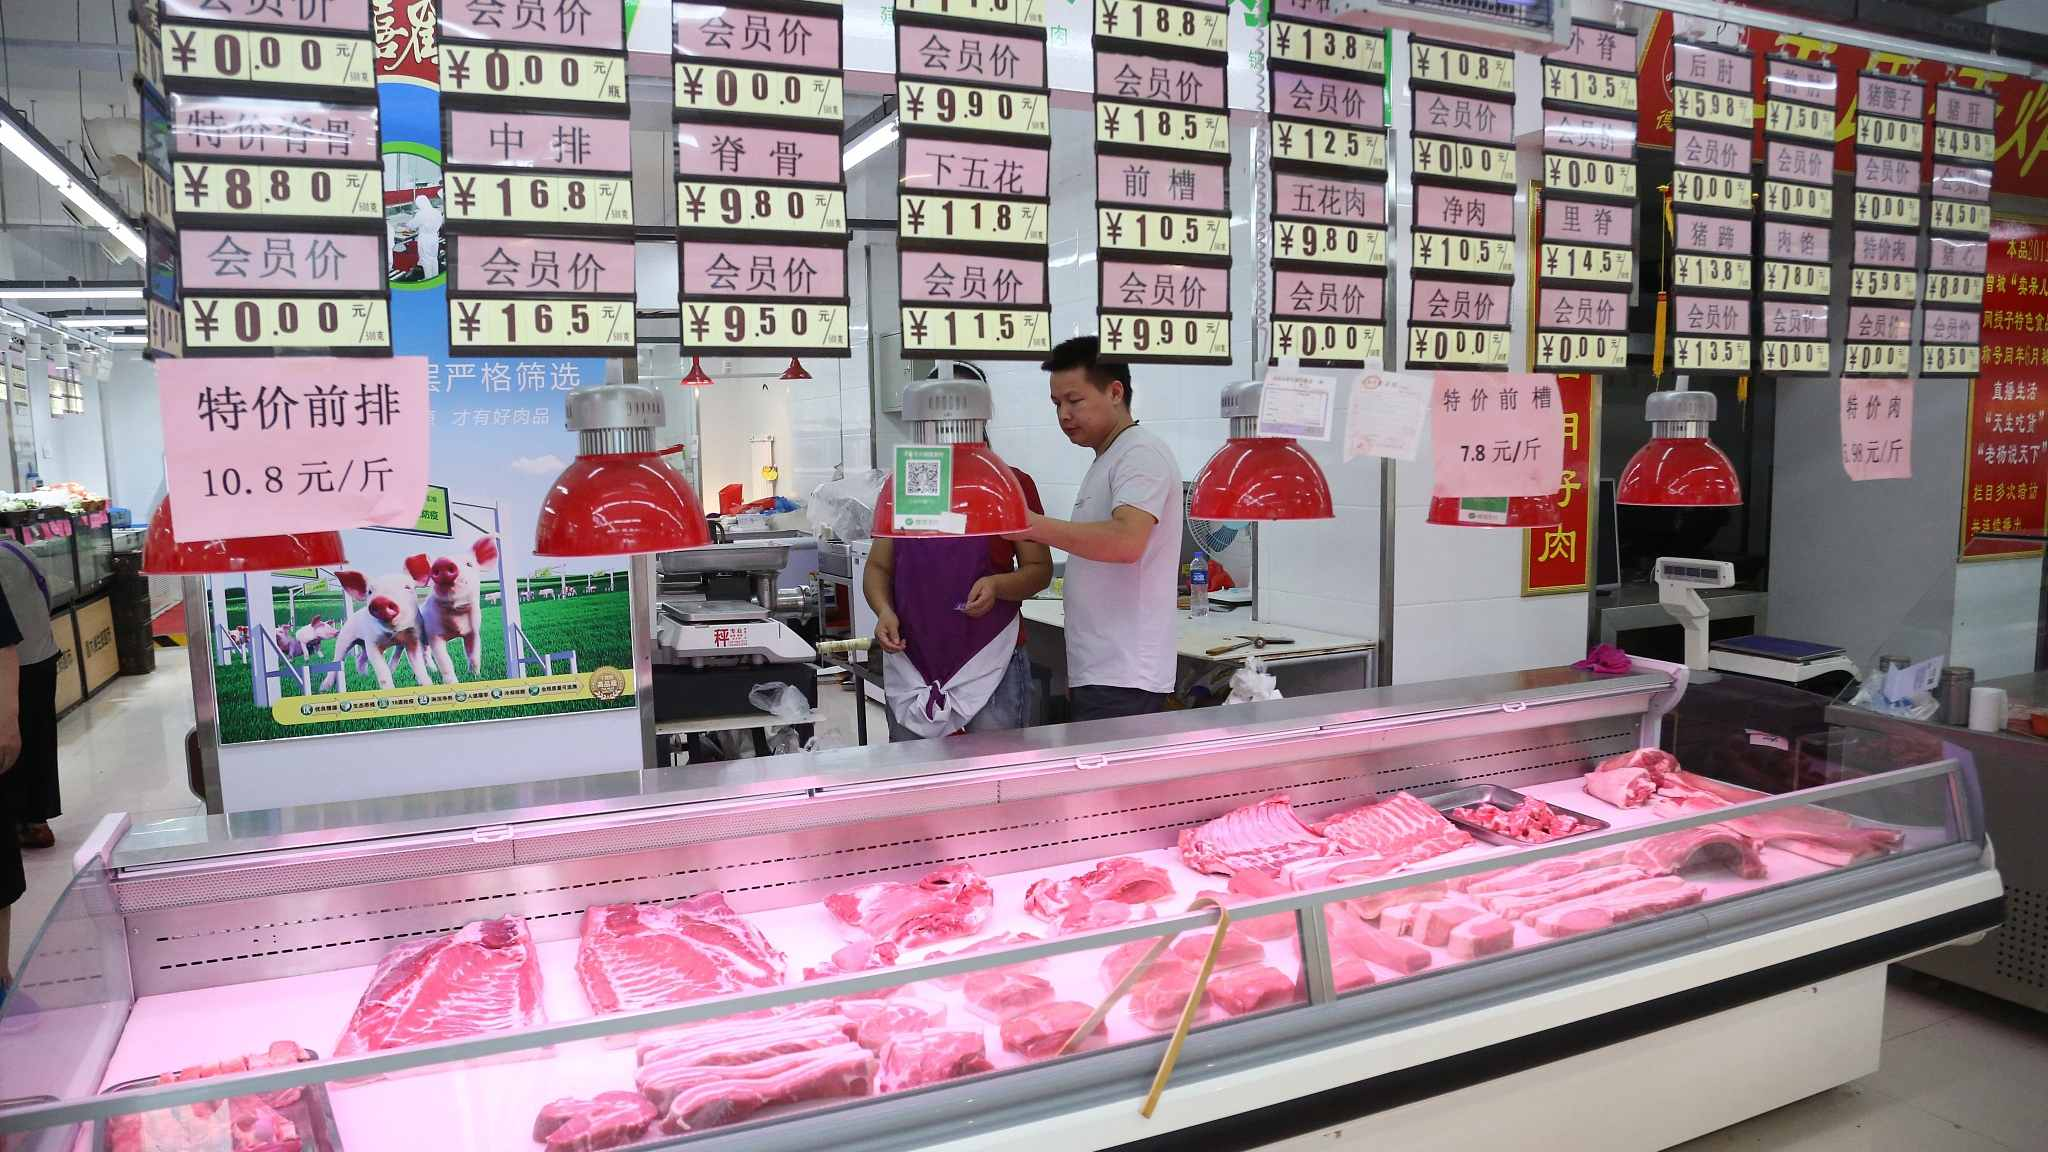 China reports new African swine fever cases